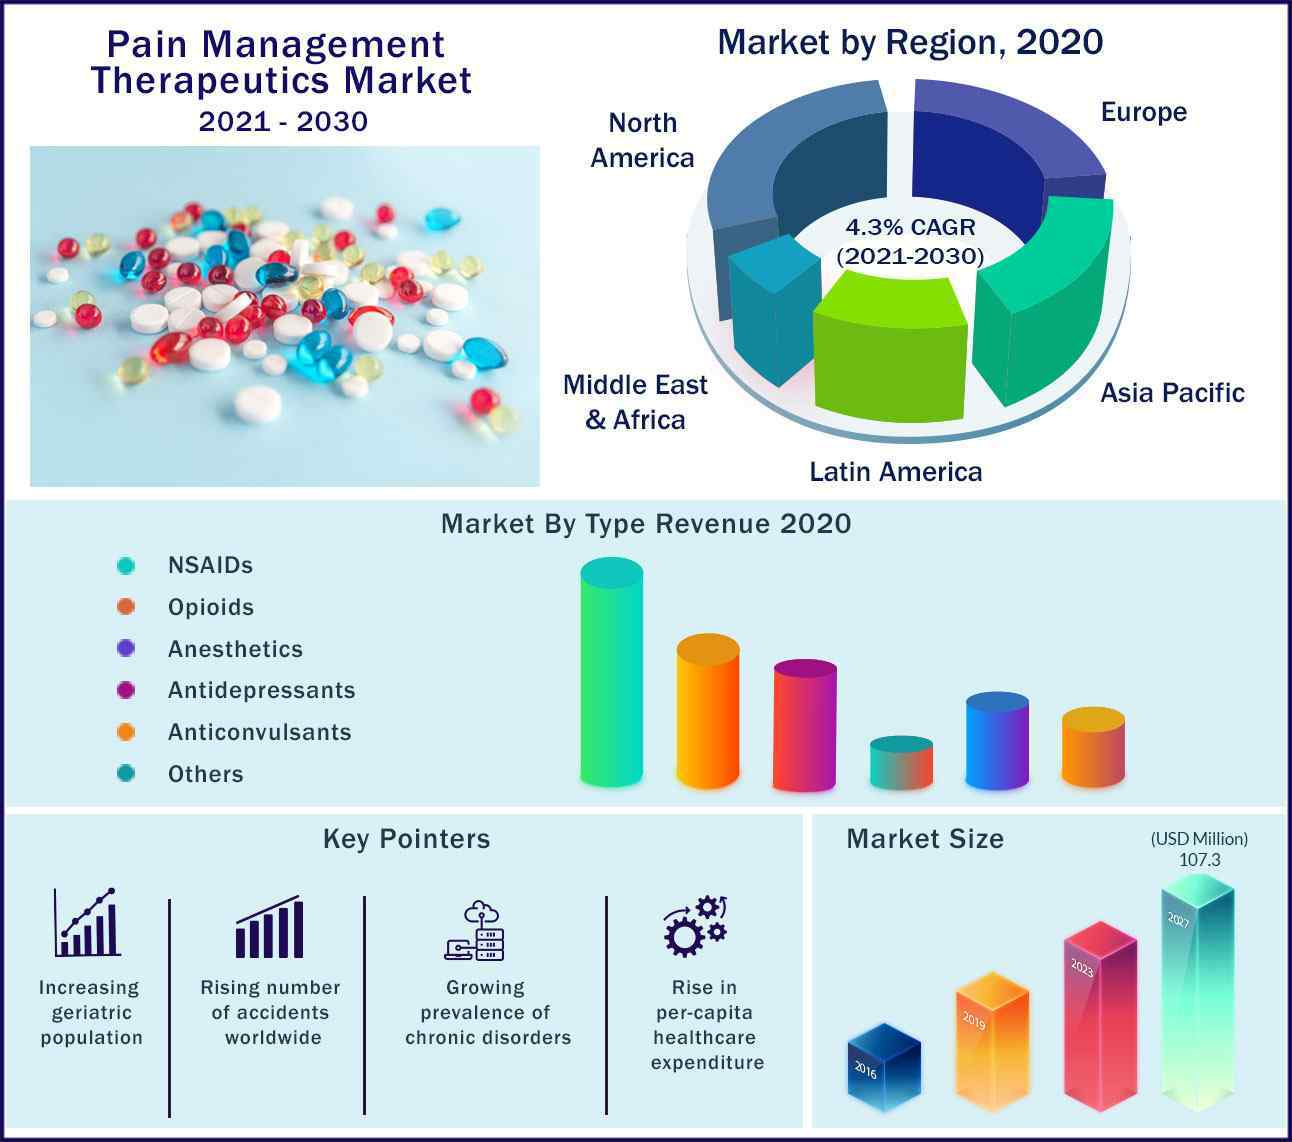 Global Pain Management Therapeutics Market 2021-2030